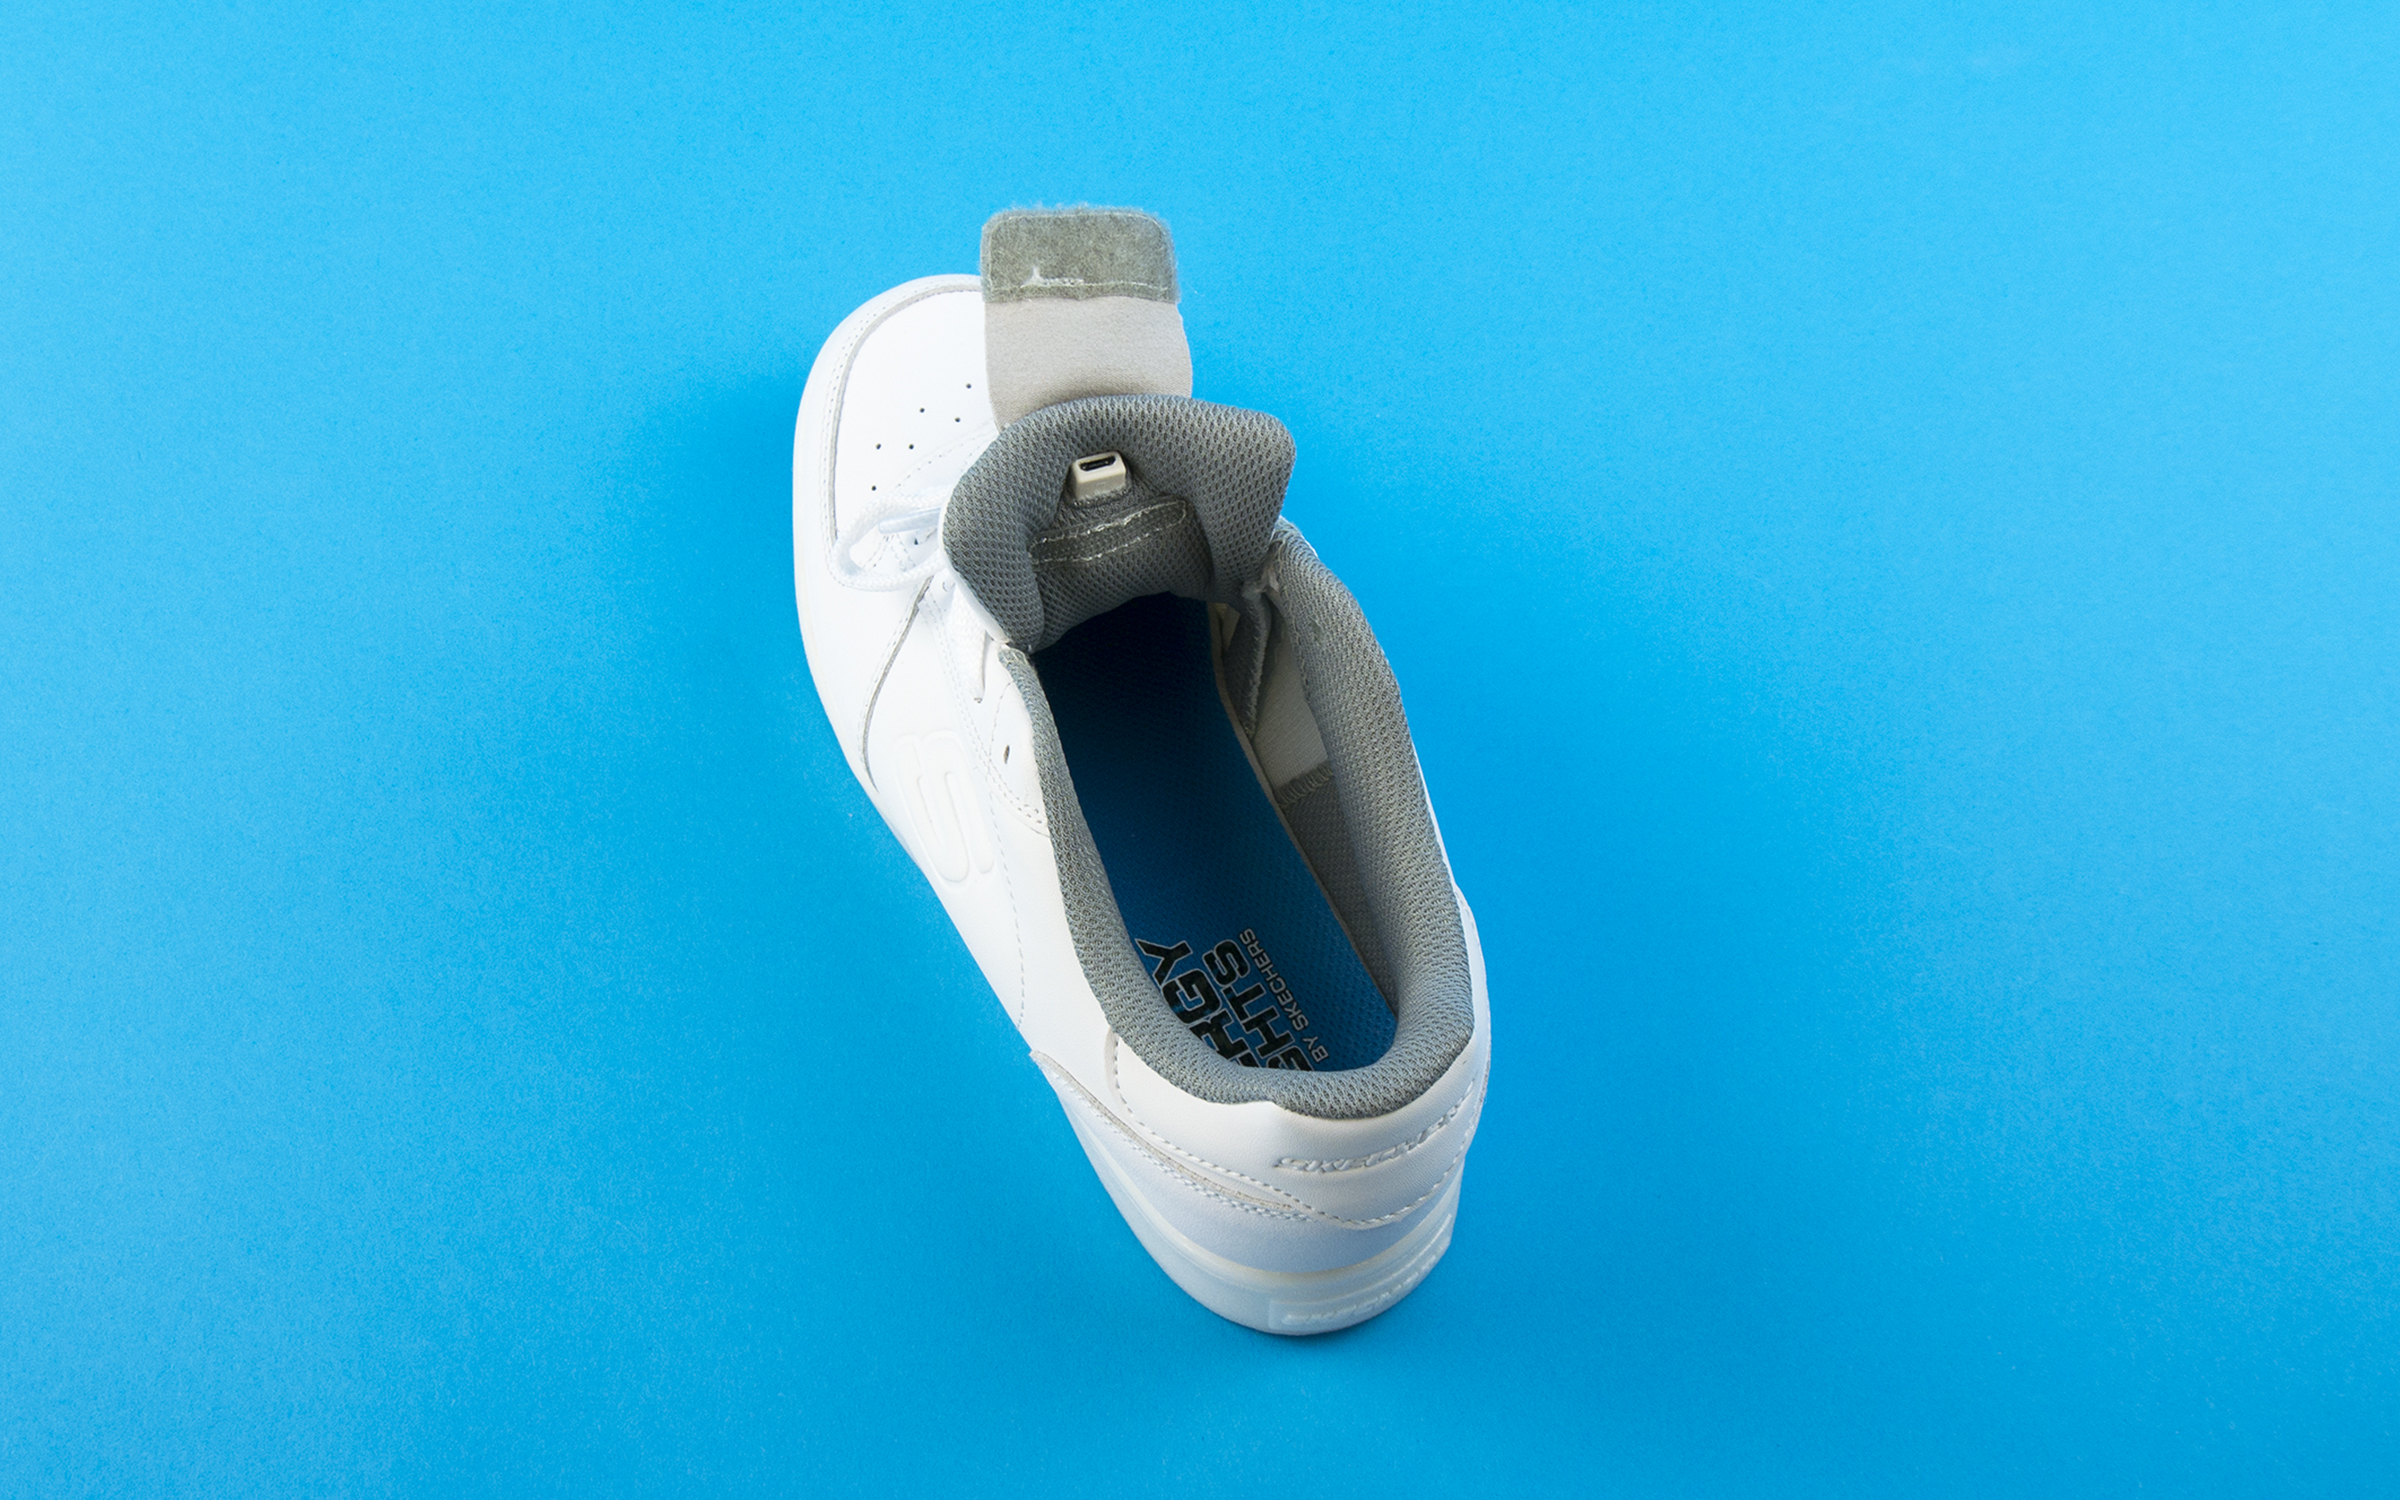 d078c9d3c703 INSERT CABLES – Energy Lights have a dual cable so you can charge both  shoes simultaneously. Just insert the cables into the ports on each shoe  (make sure ...